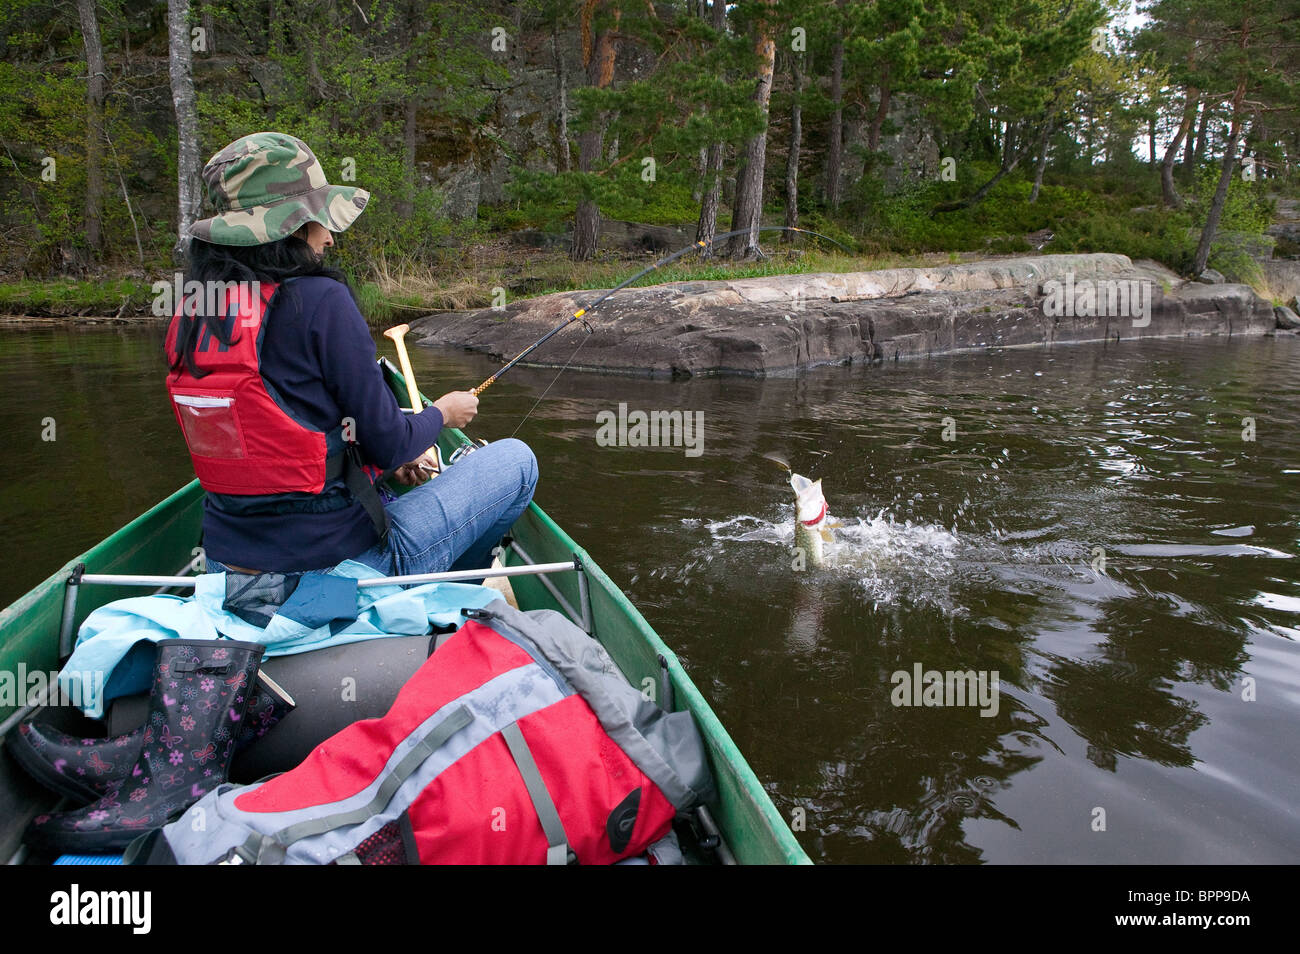 Girl handling a Northern Pike, Esox lucius, caught in the lake Vansjø, Østfold fylke, Norway. - Stock Image